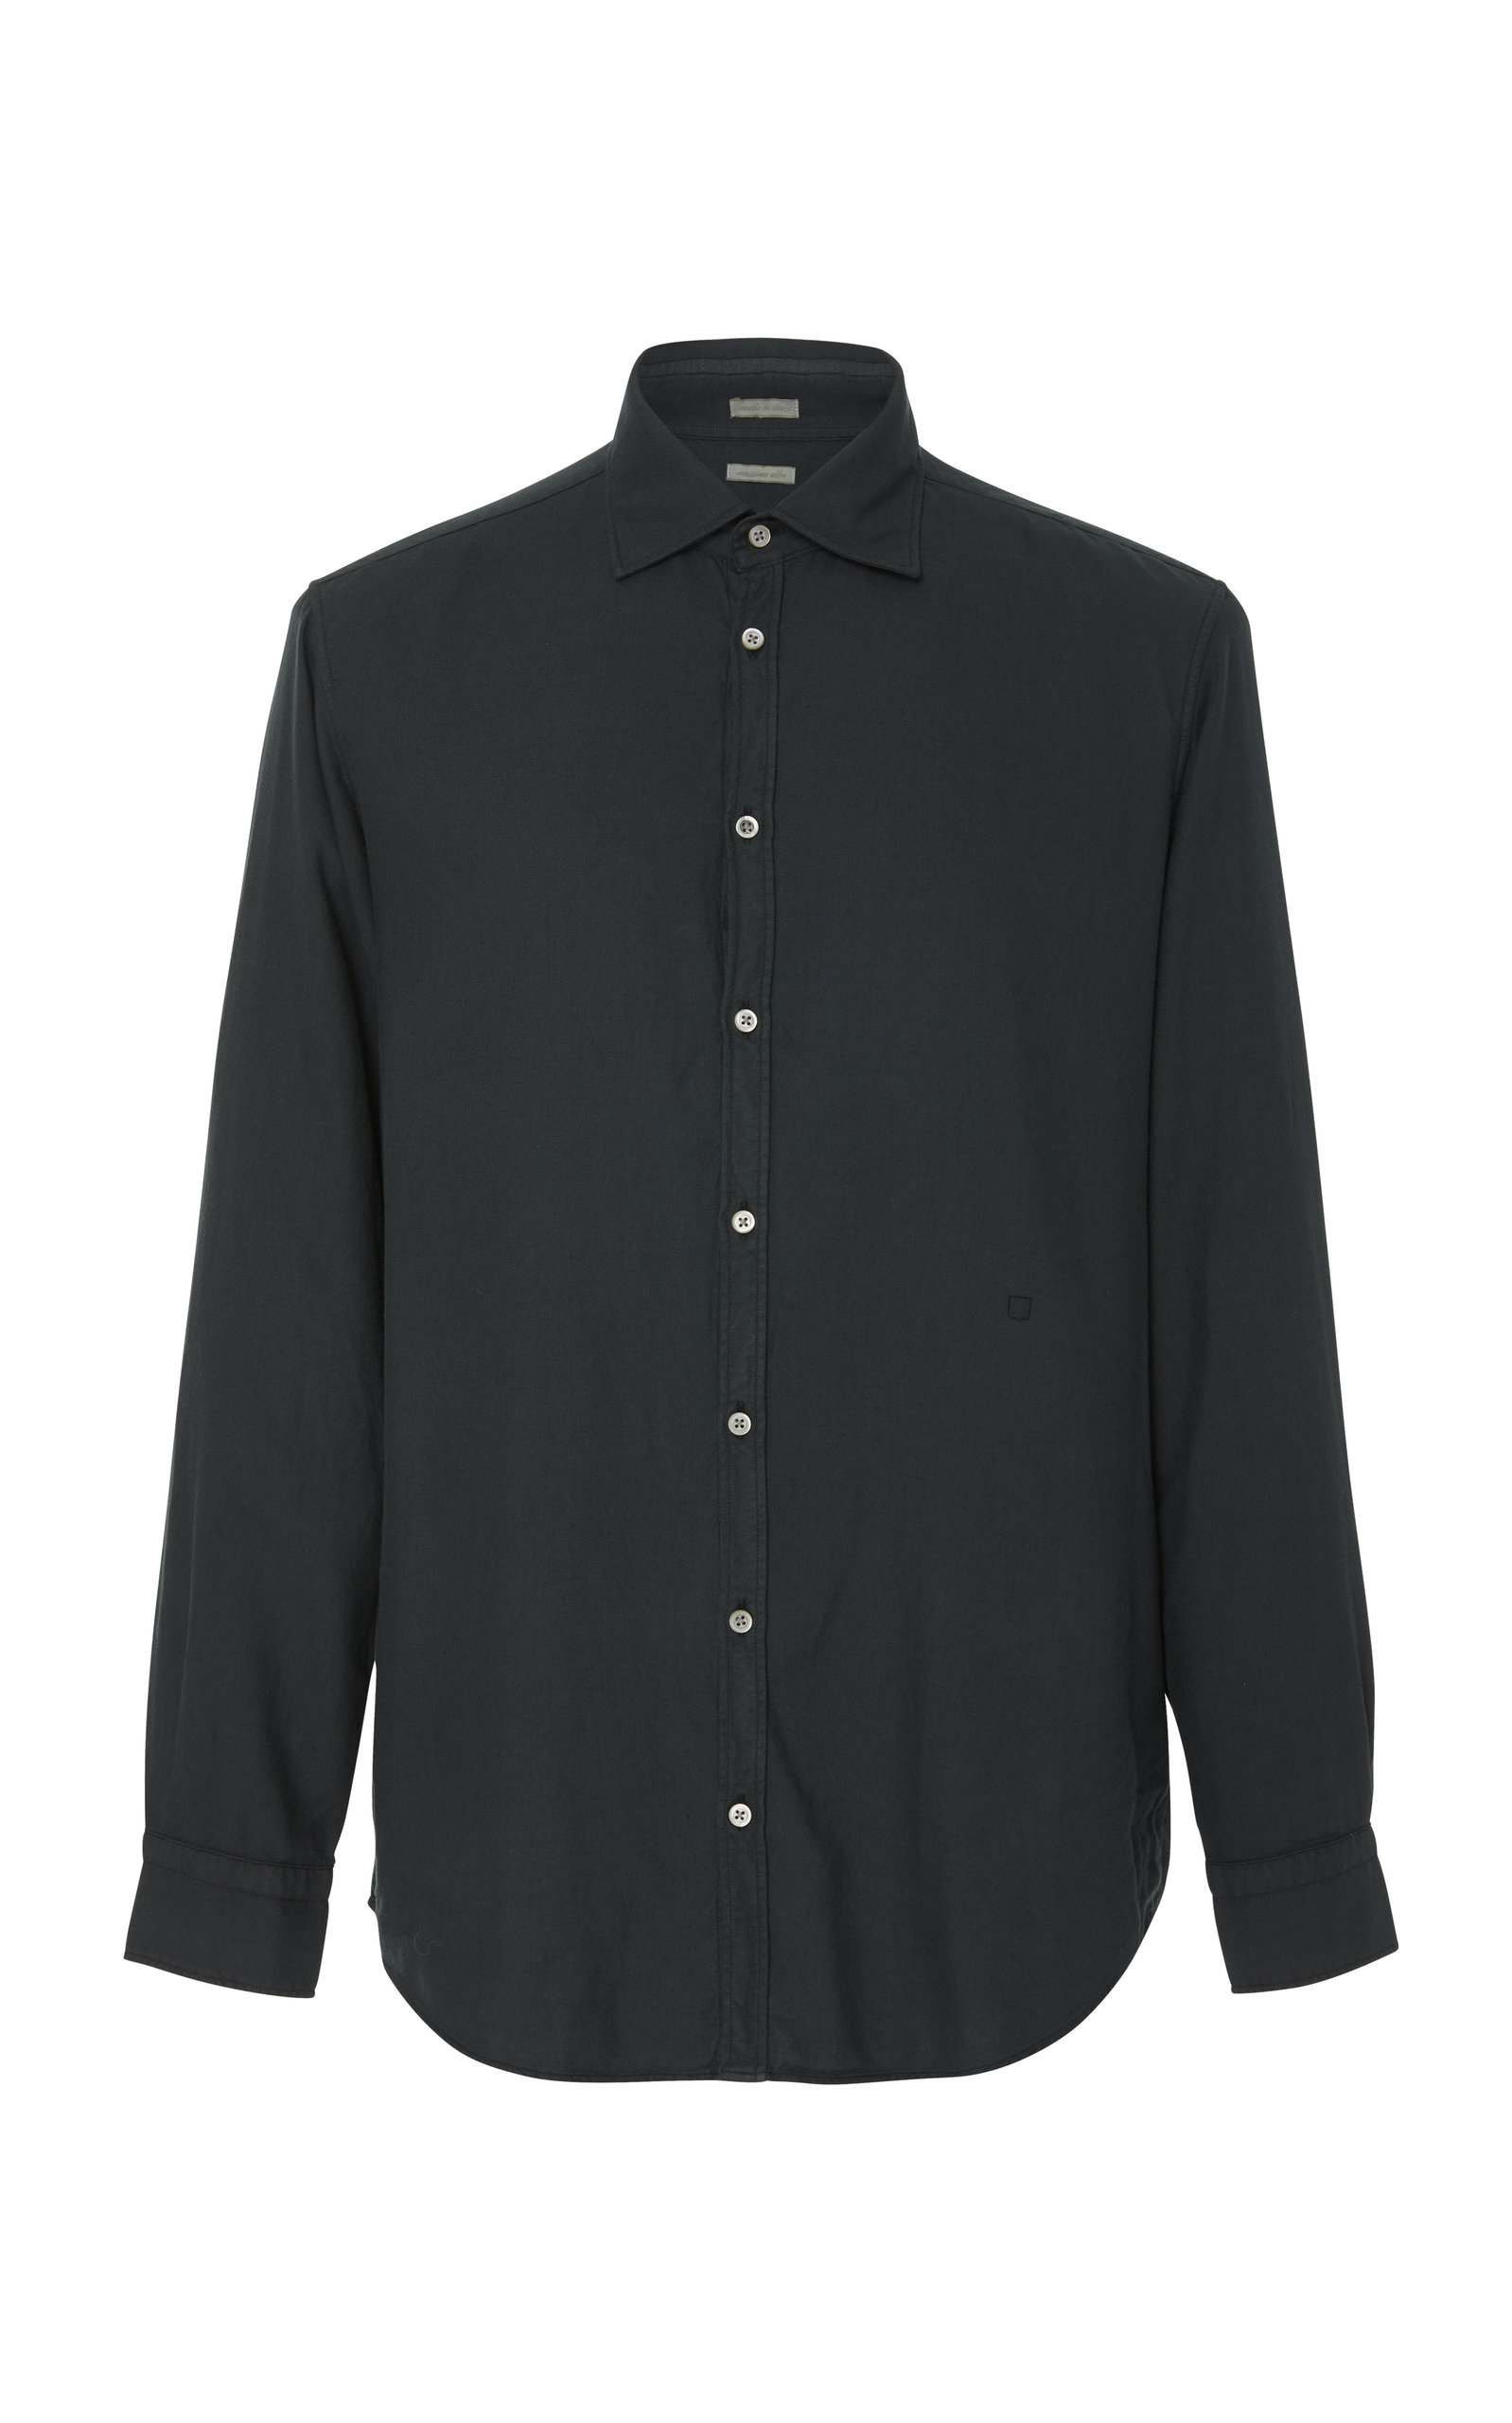 MASSIMO ALBA SPREAD COLLAR BUTTON-UP SHIRT